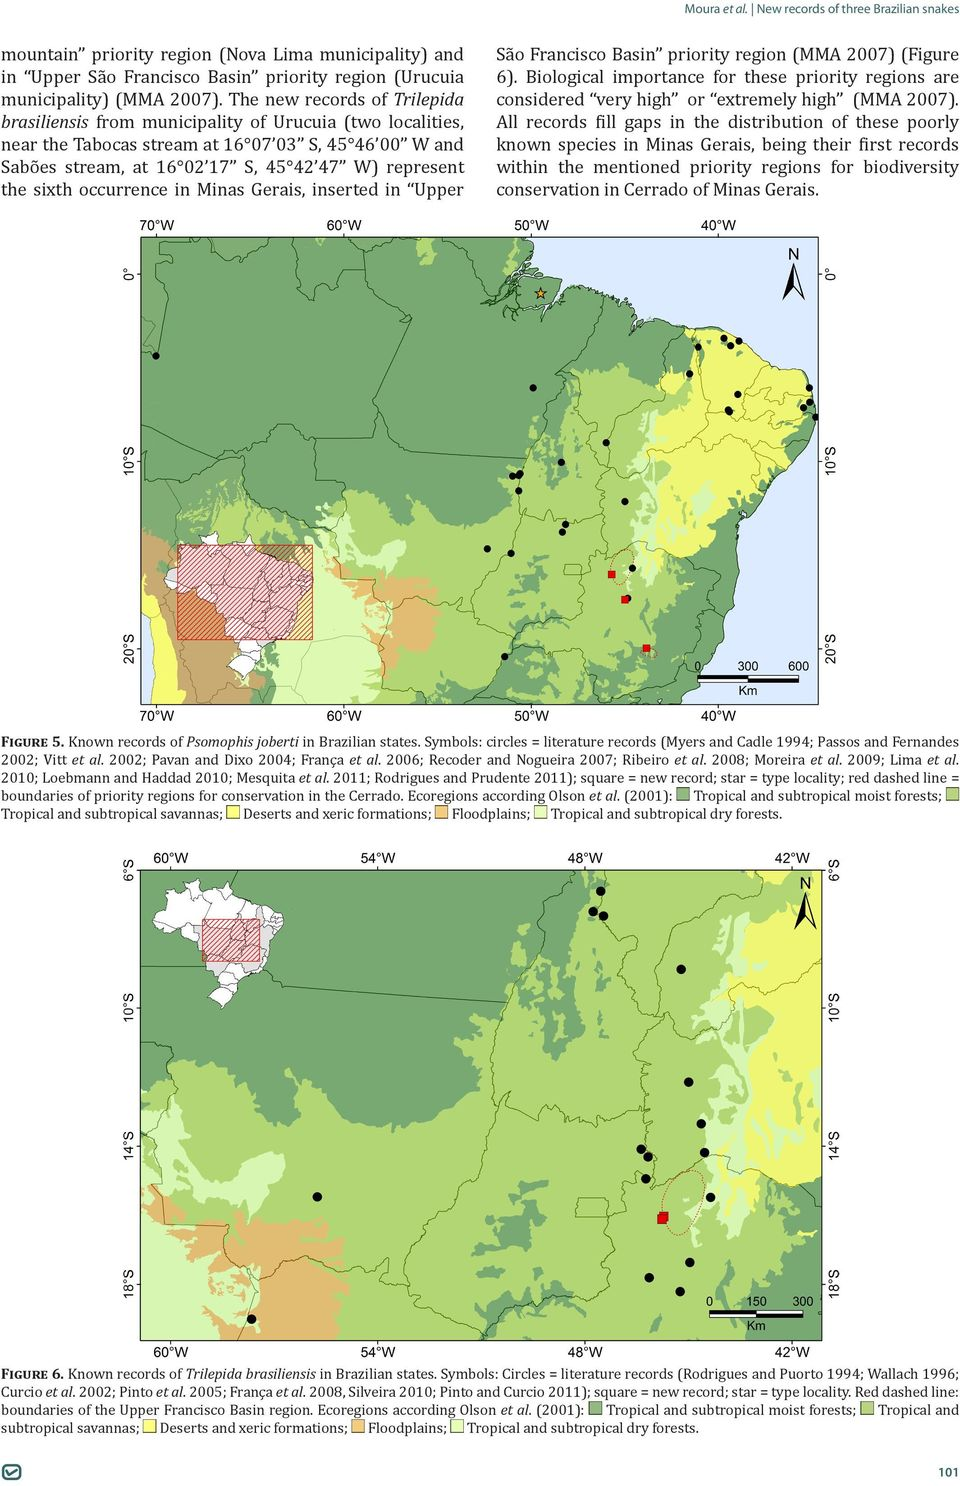 sixth occurrence in Minas Gerais, inserted in Upper São Francisco Basin priority region (MMA 2007) (Figure 6).